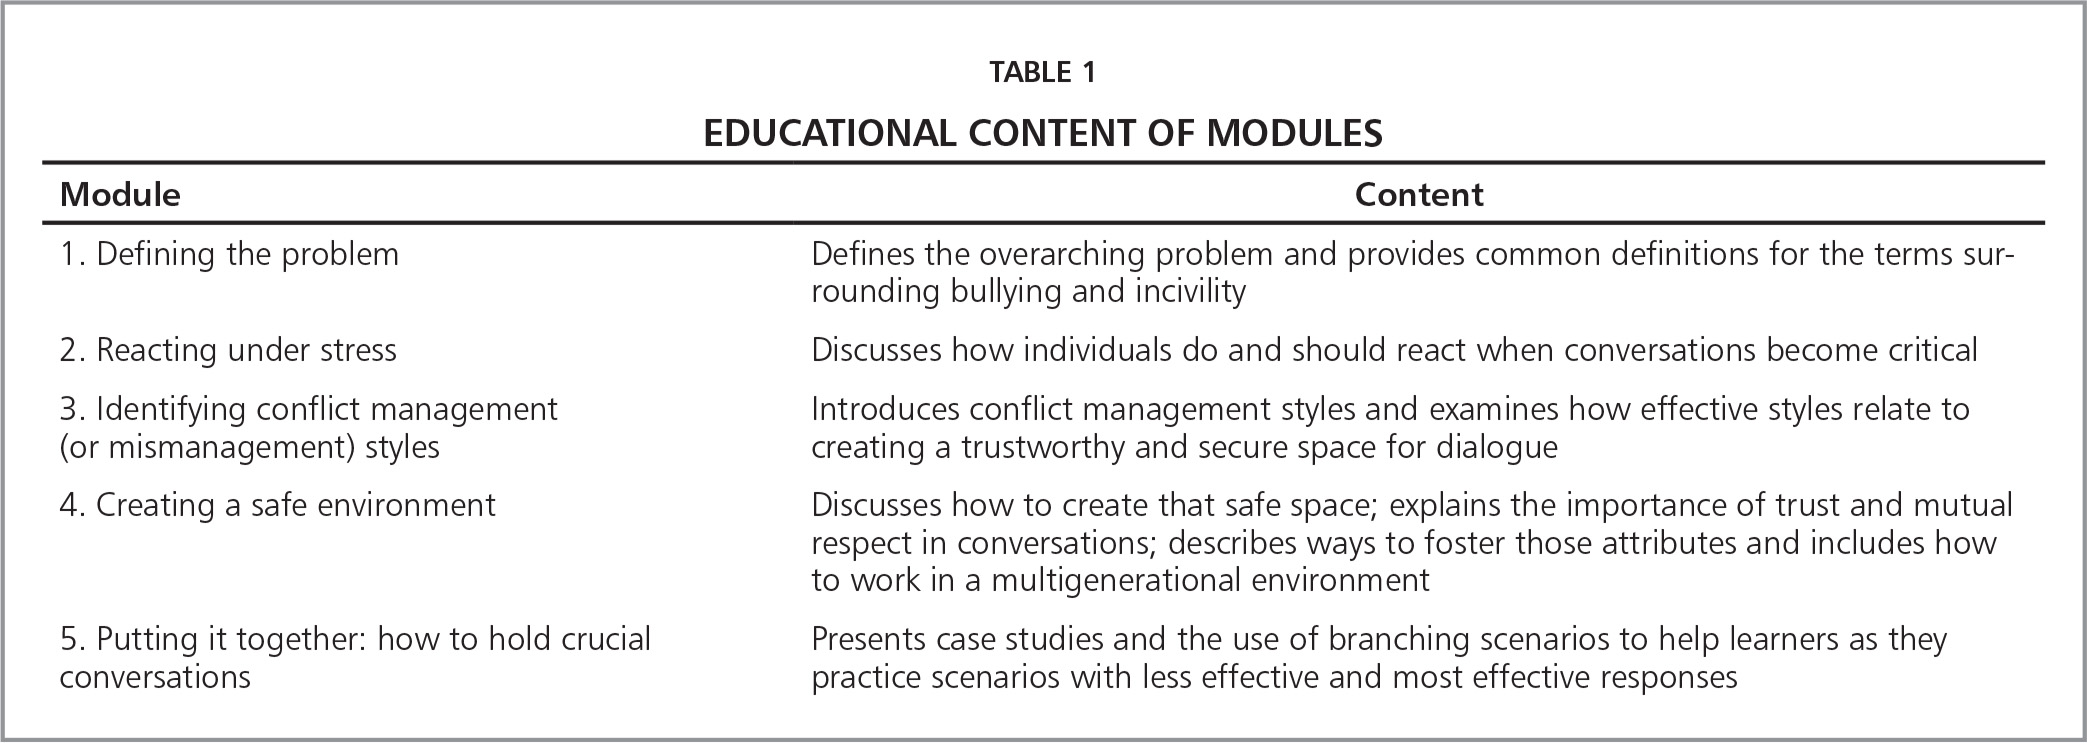 Educational Content of Modules